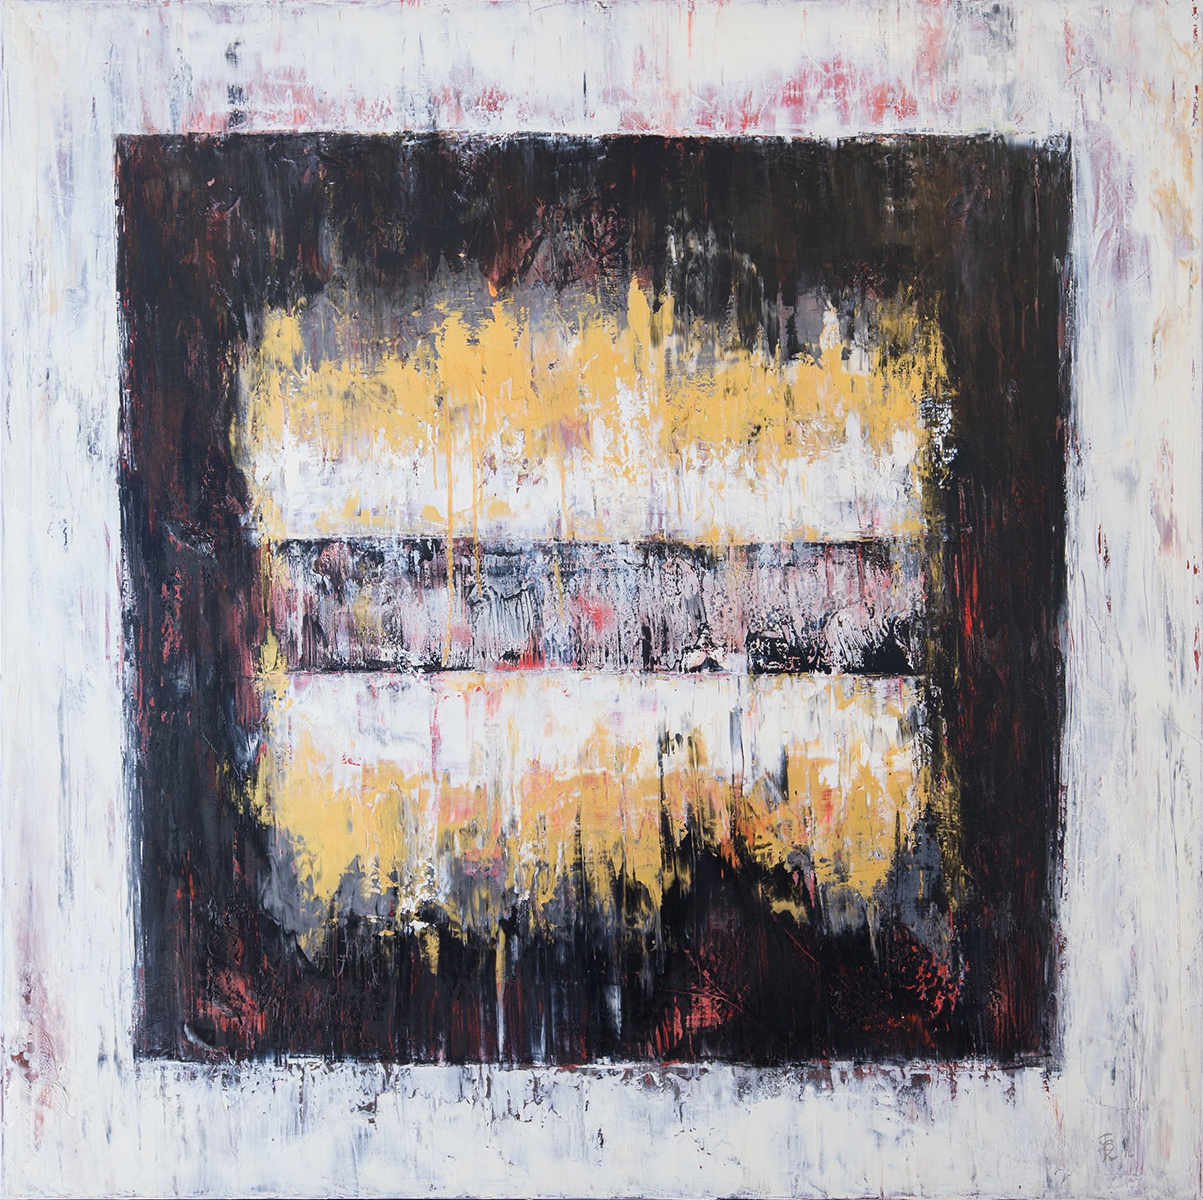 60x60_IC_IceCubeBlack&Red_2016_Krutick_Oil web.jpg